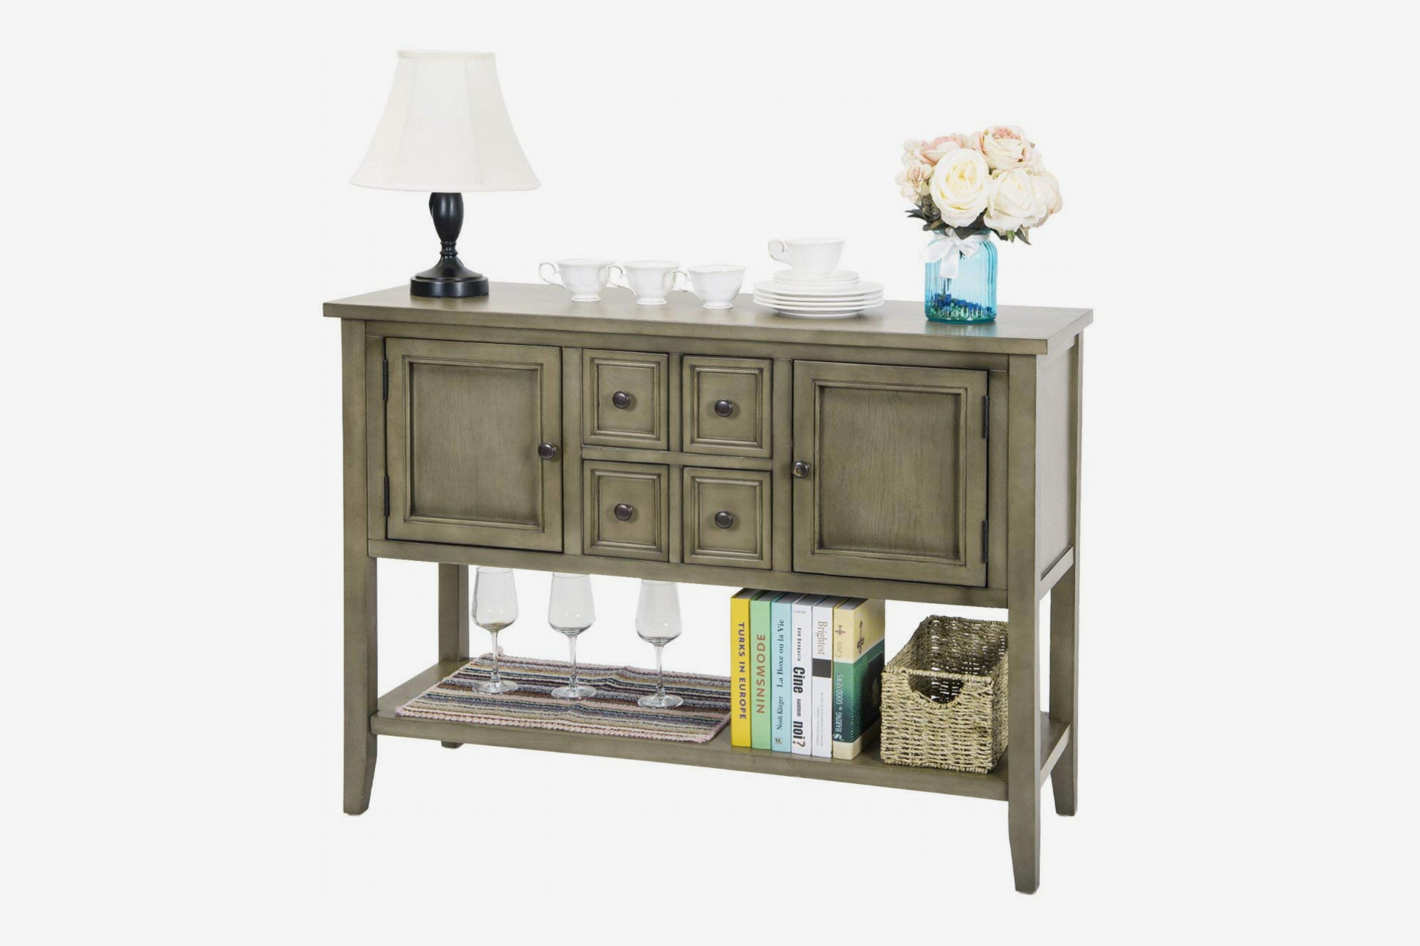 Harper&Bright Designs Acacia Mangium Sideboard Console Table